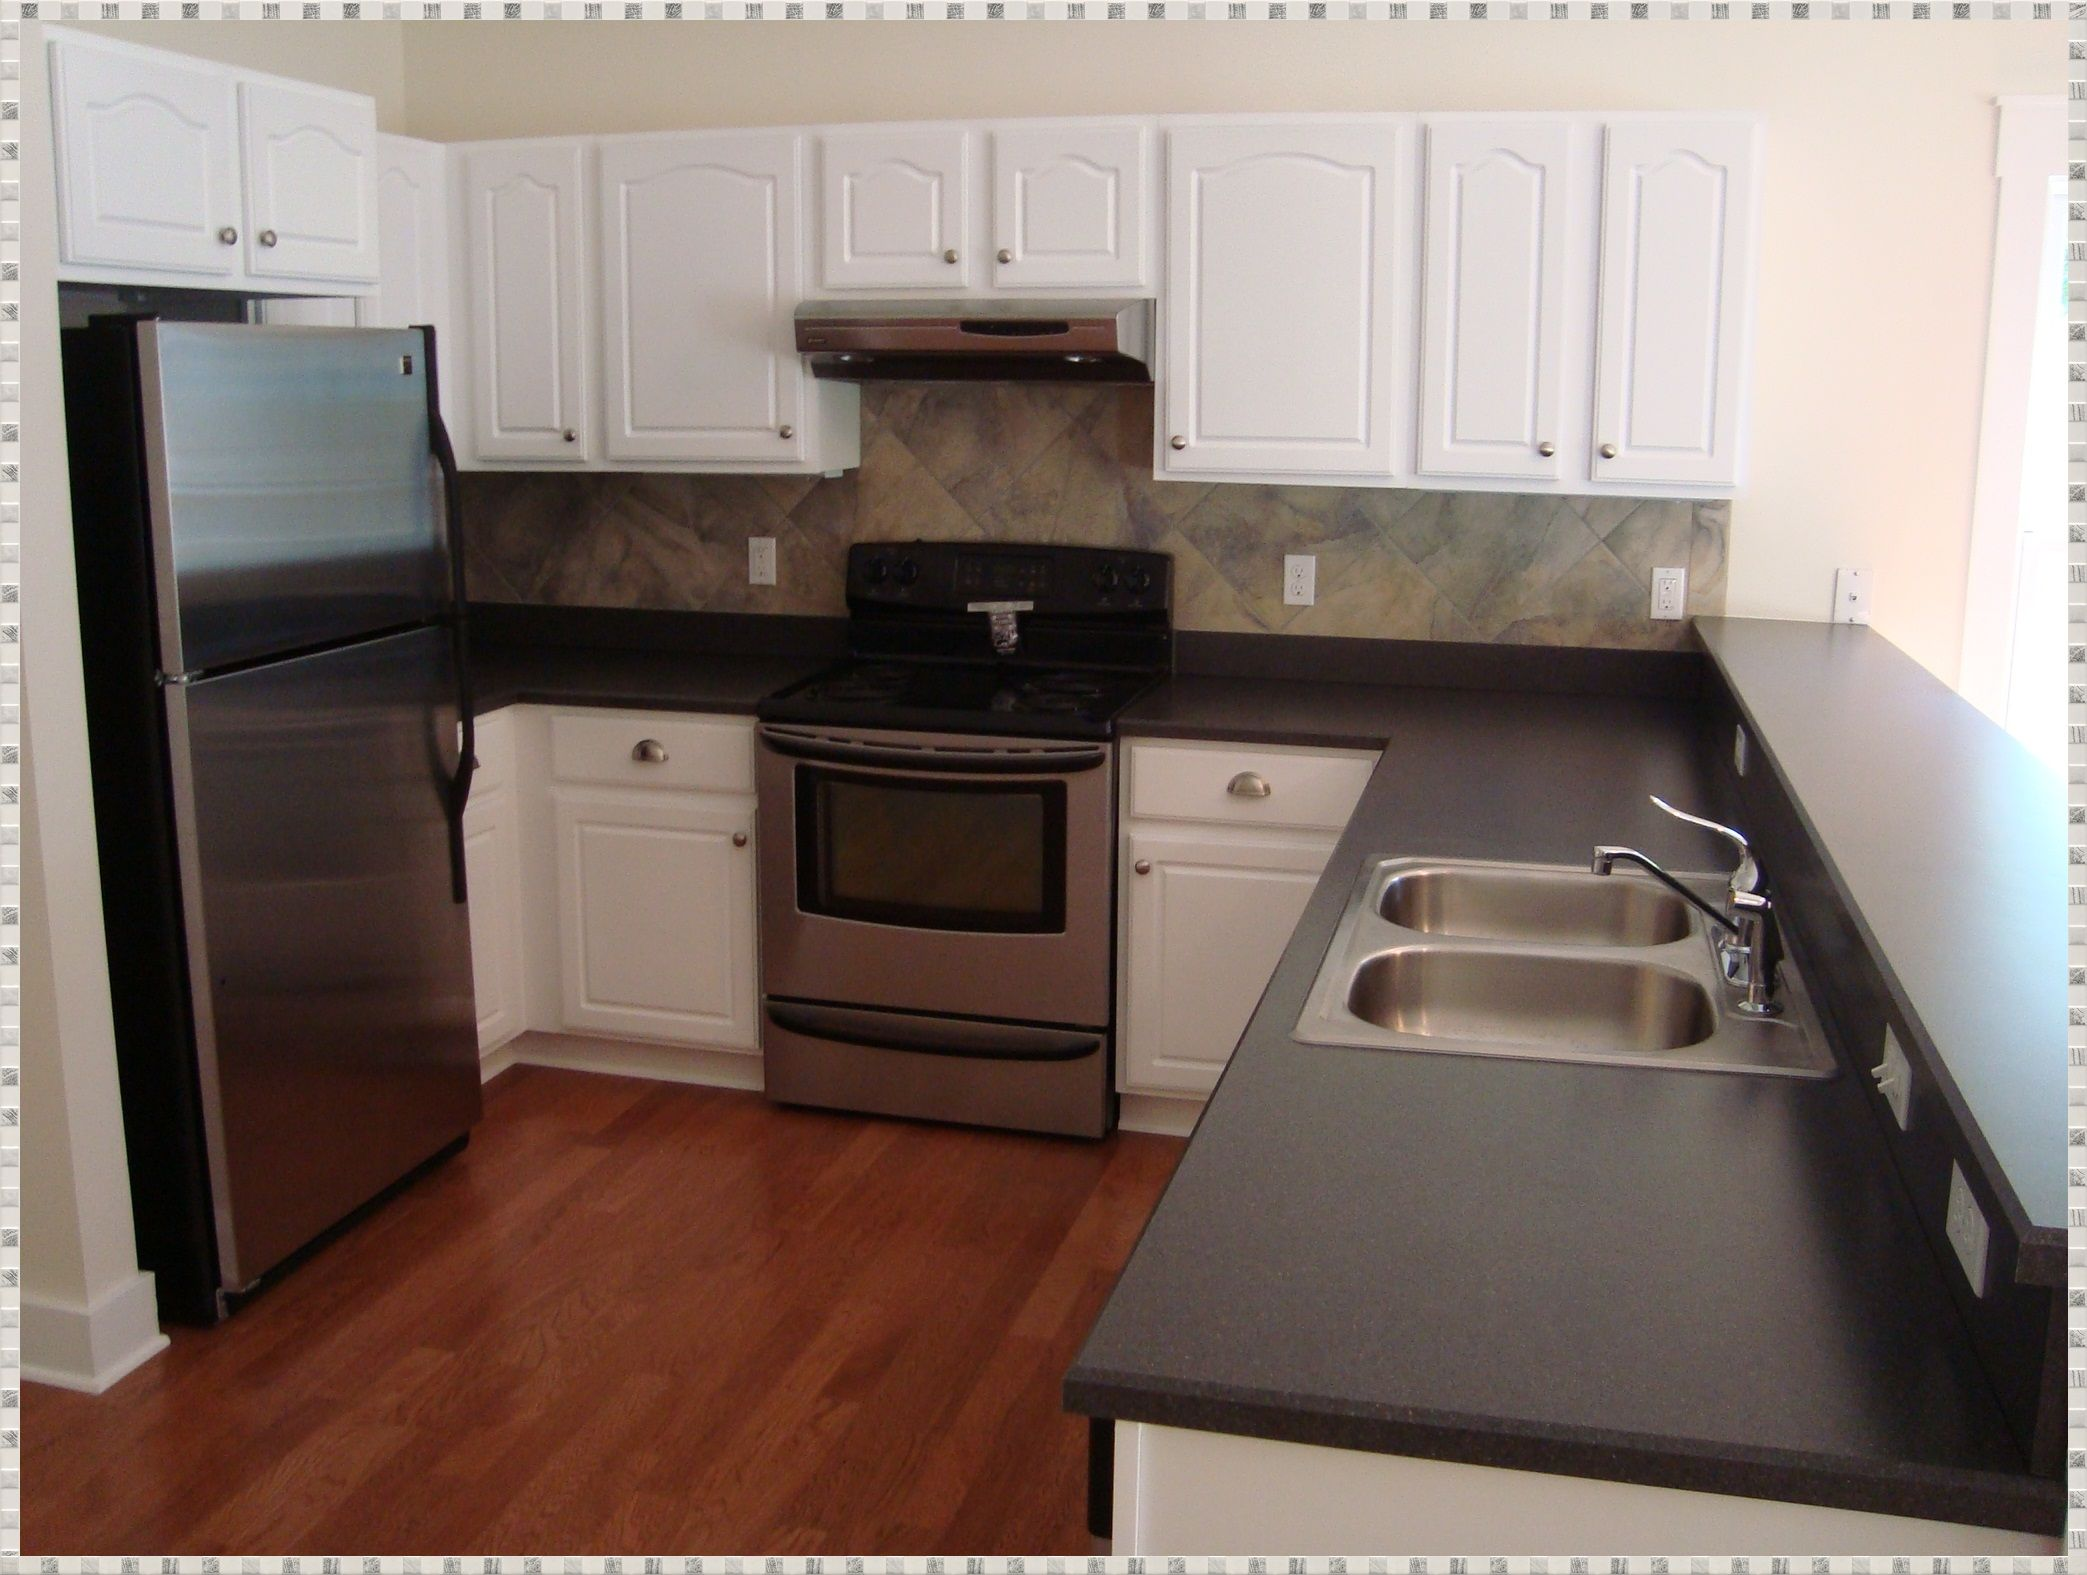 Off White Kitchen Cabinets With Black Stainless Appliances